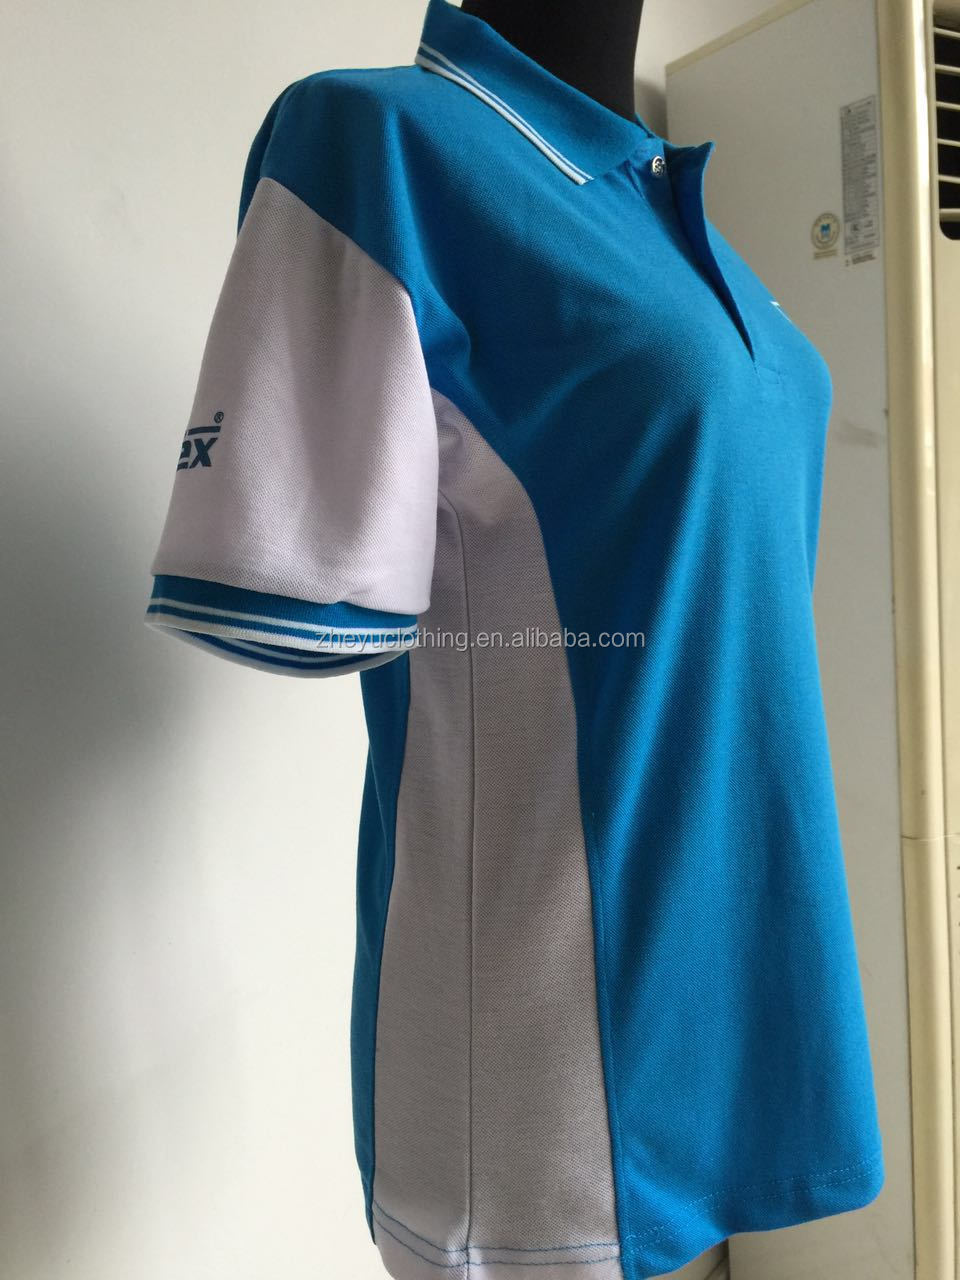 Customized Cotton Man Polo Tshirt At Factory Price Pique Cloth Poloshirts